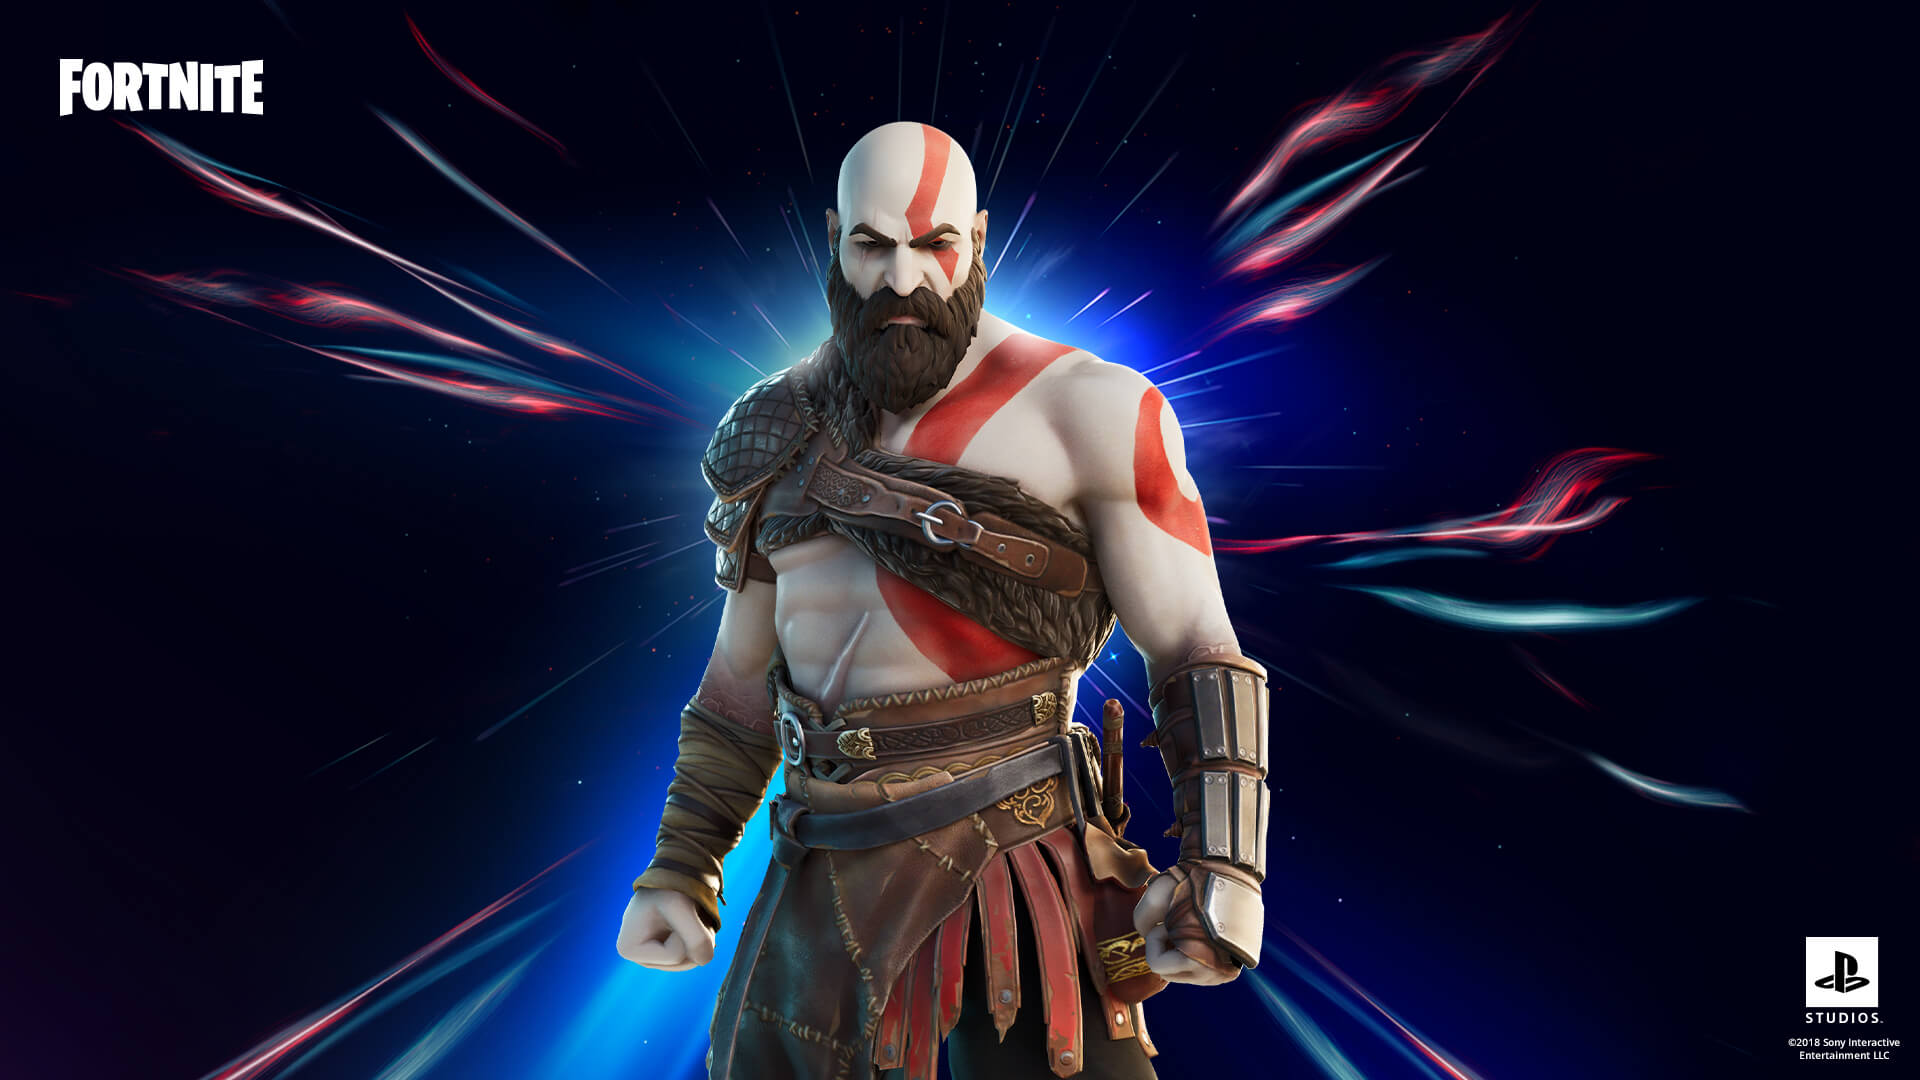 Fortnite Kratos Outfit